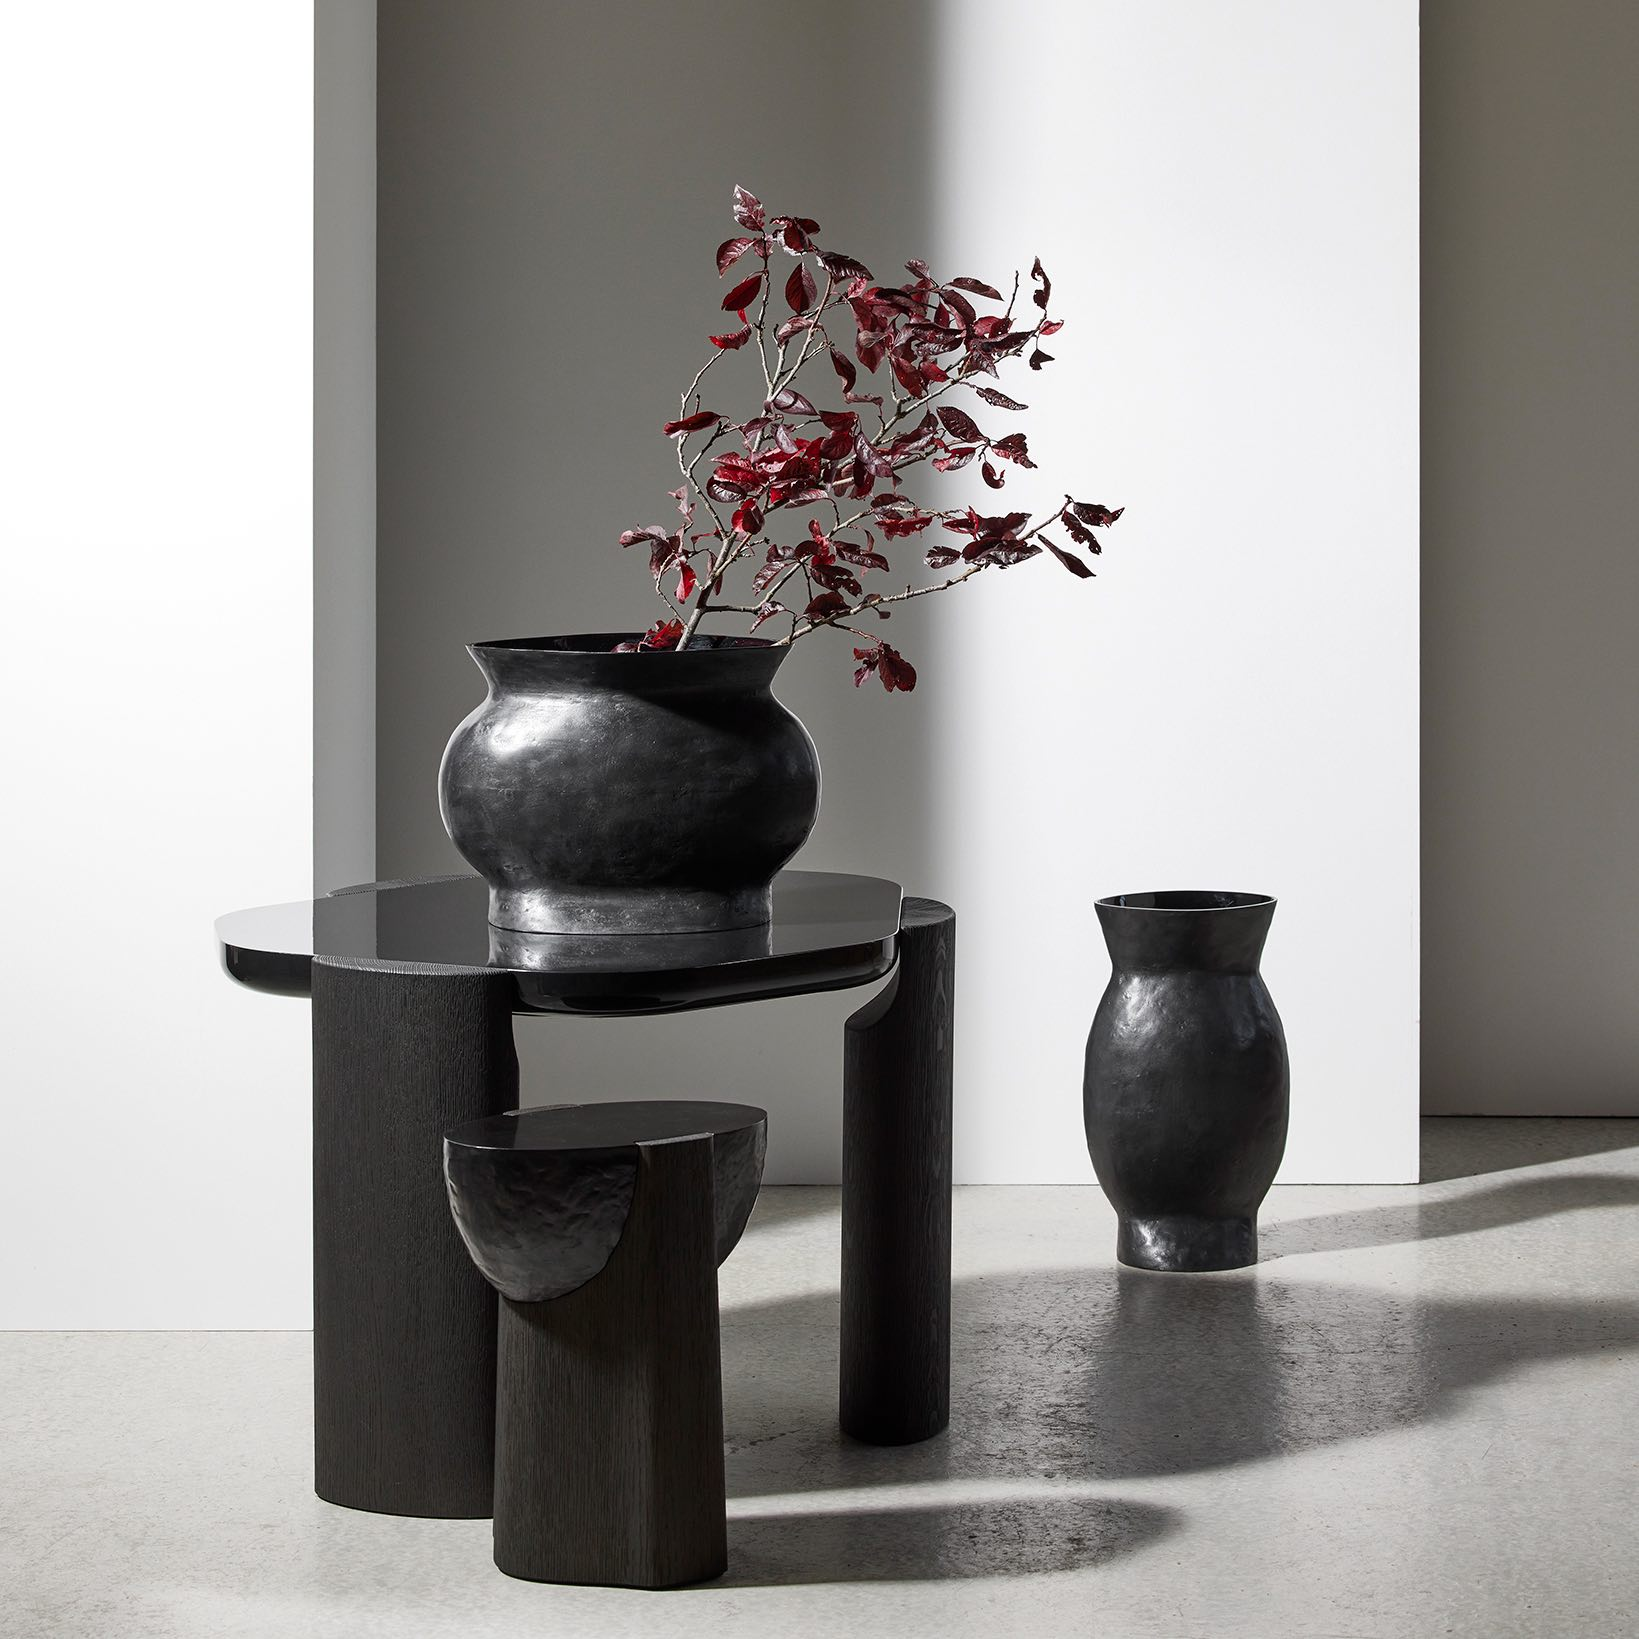 CANDY-vases-dan-Yeffet-Collection-Particuliere